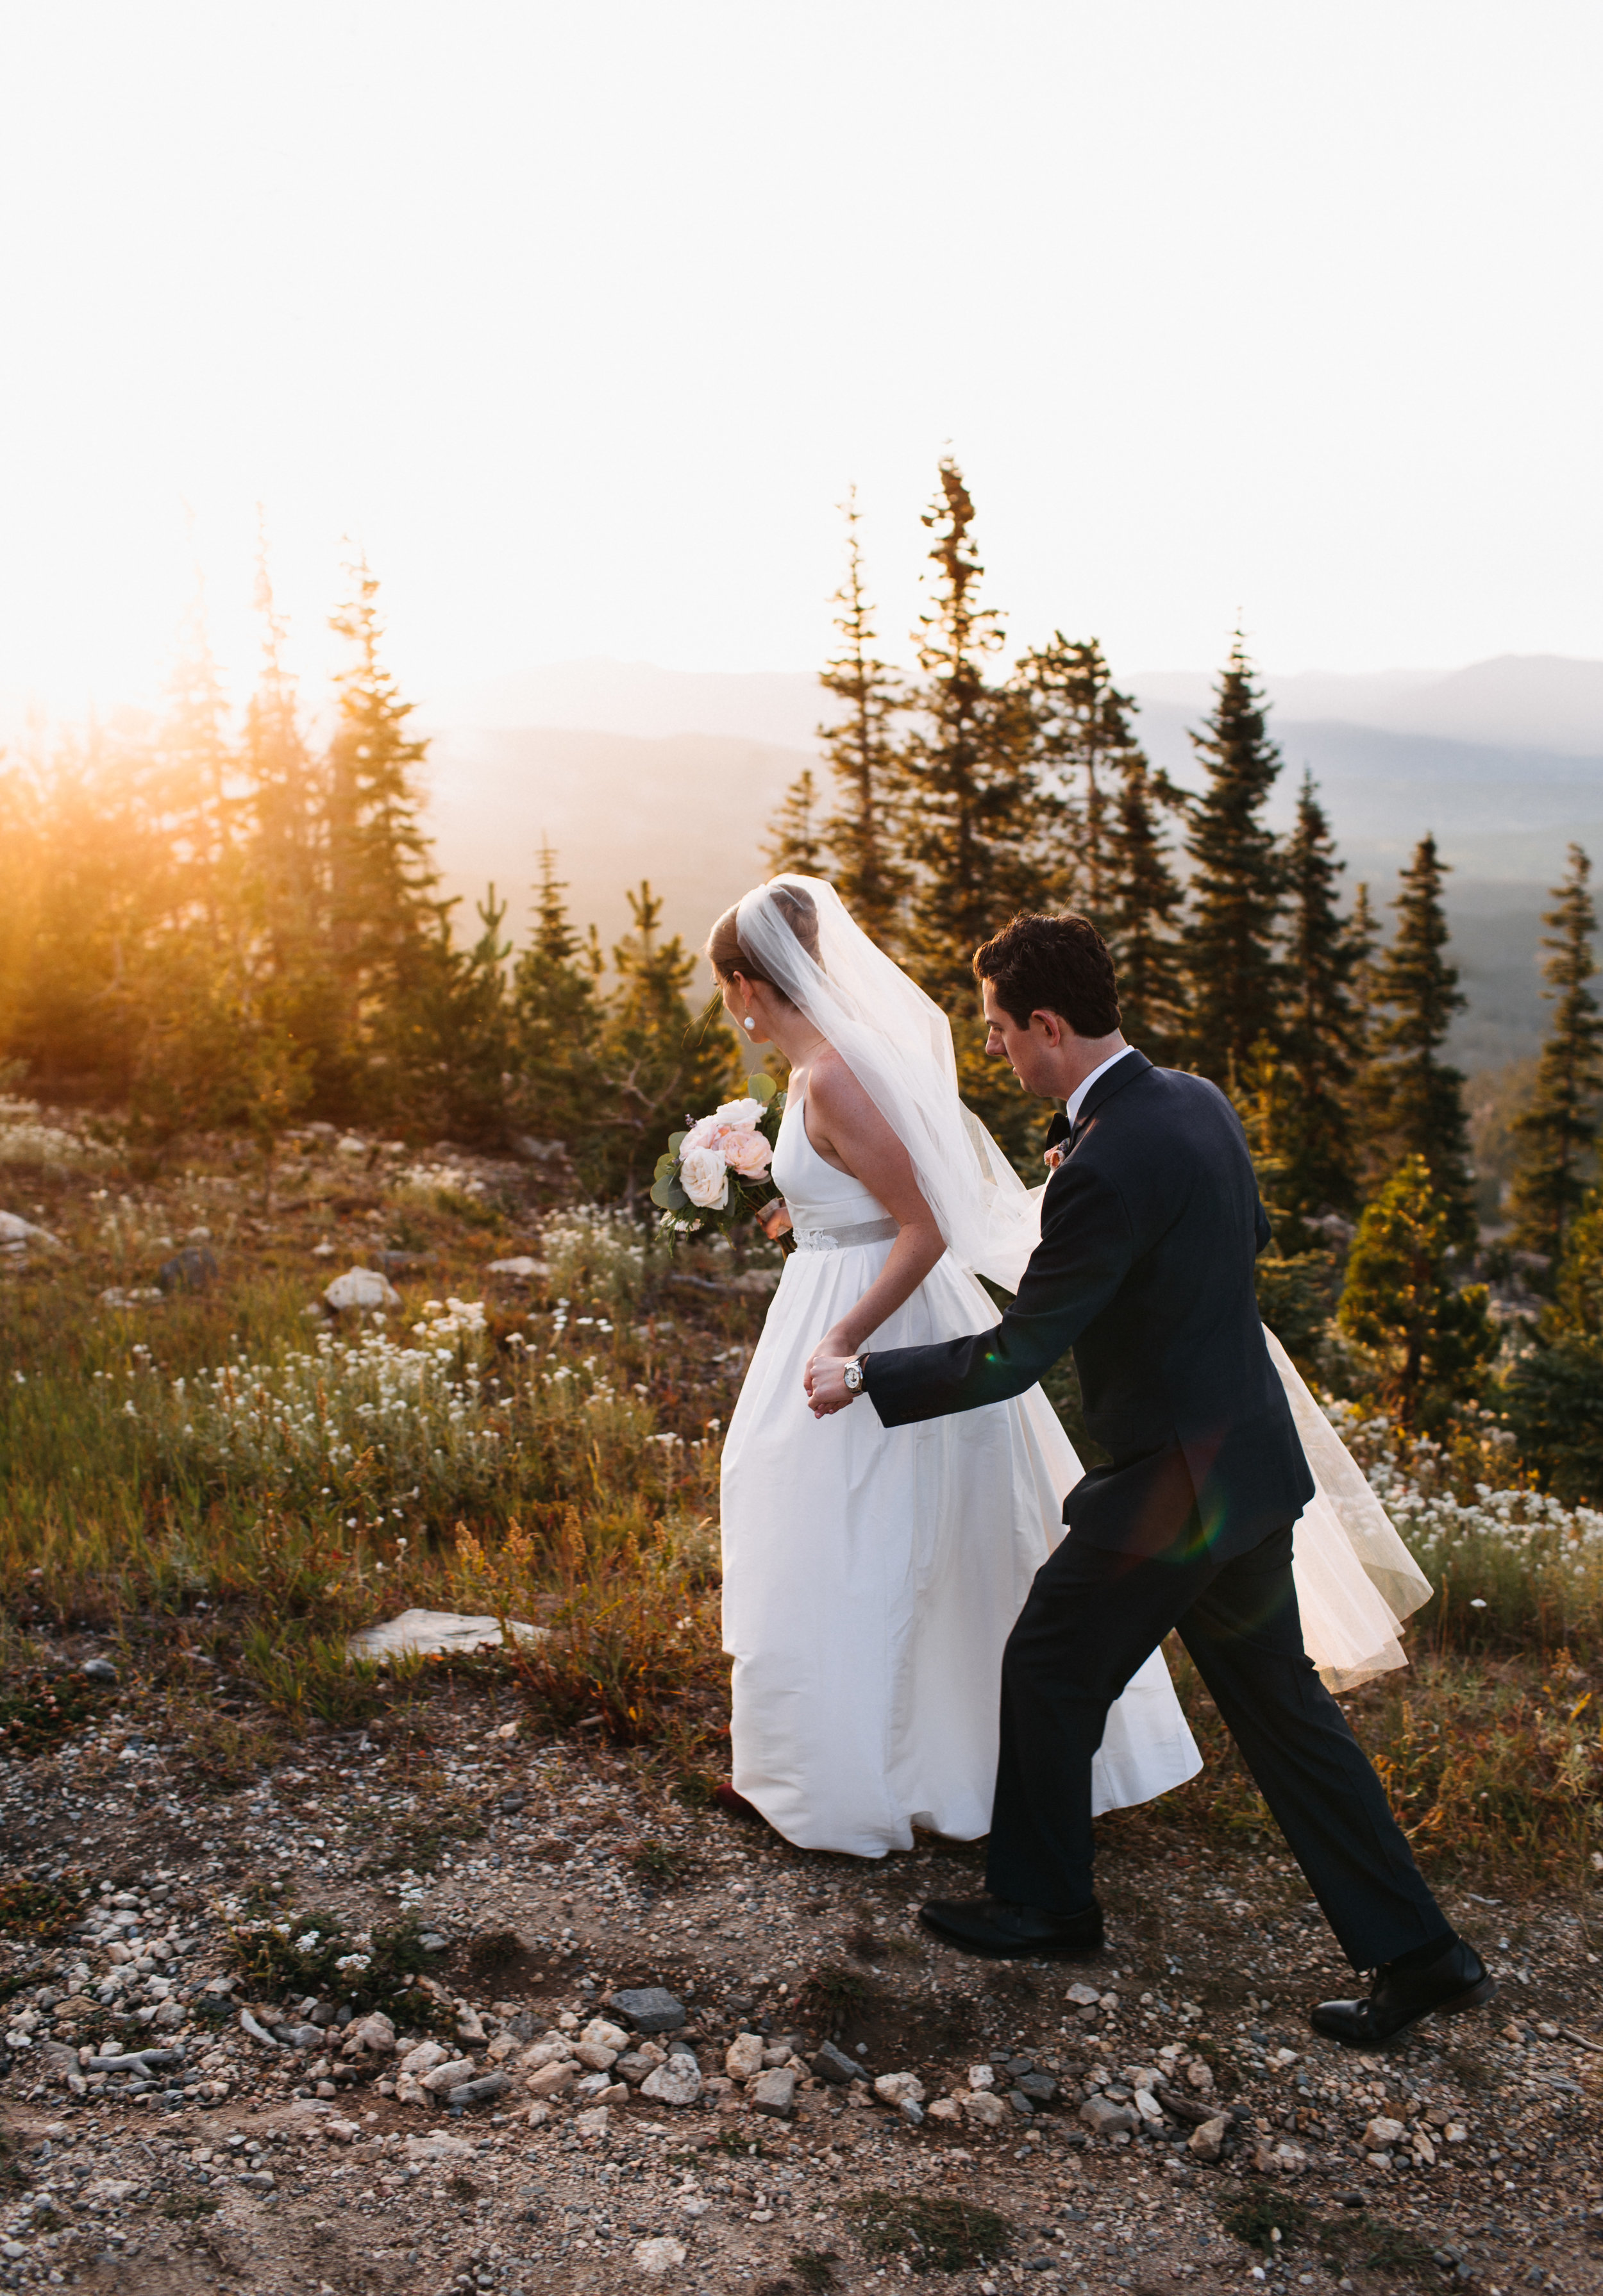 NADEGE + JOE | MOUNTAIN WEDDING AT THE LODGE AT SUNSPOT